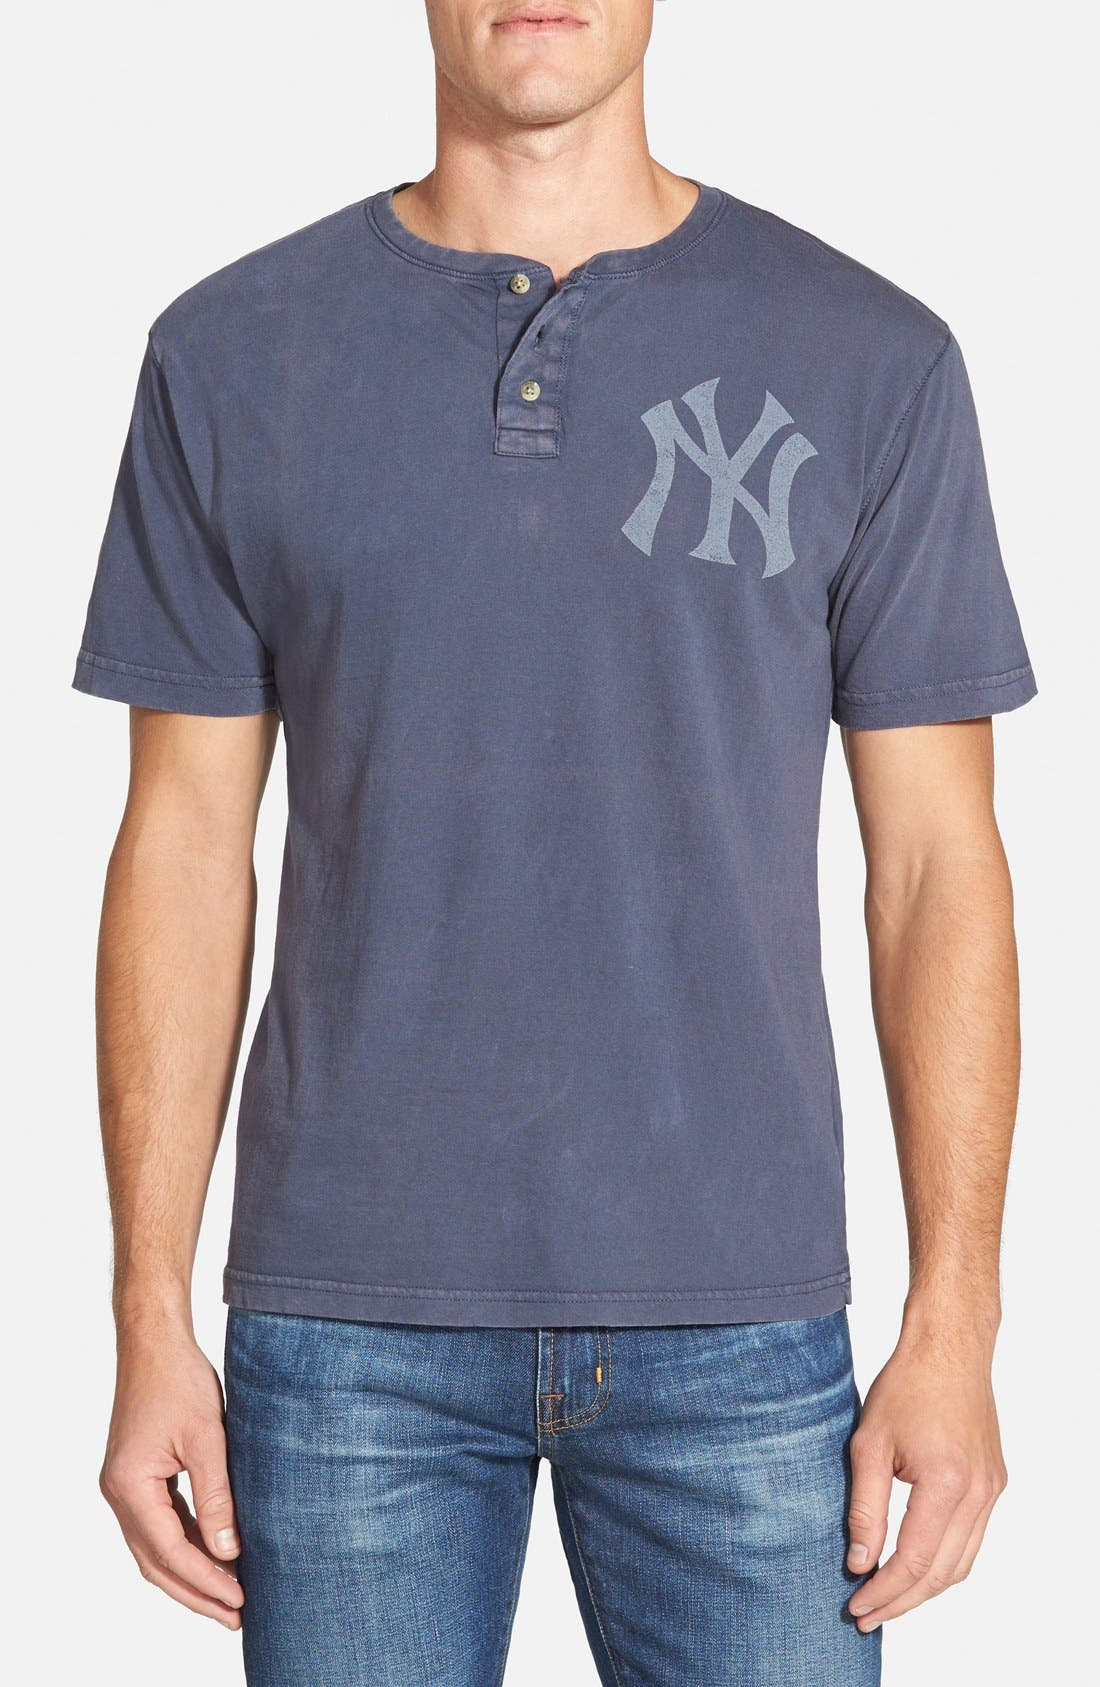 Red Jacket 'New York Yankees - Luther' Henley